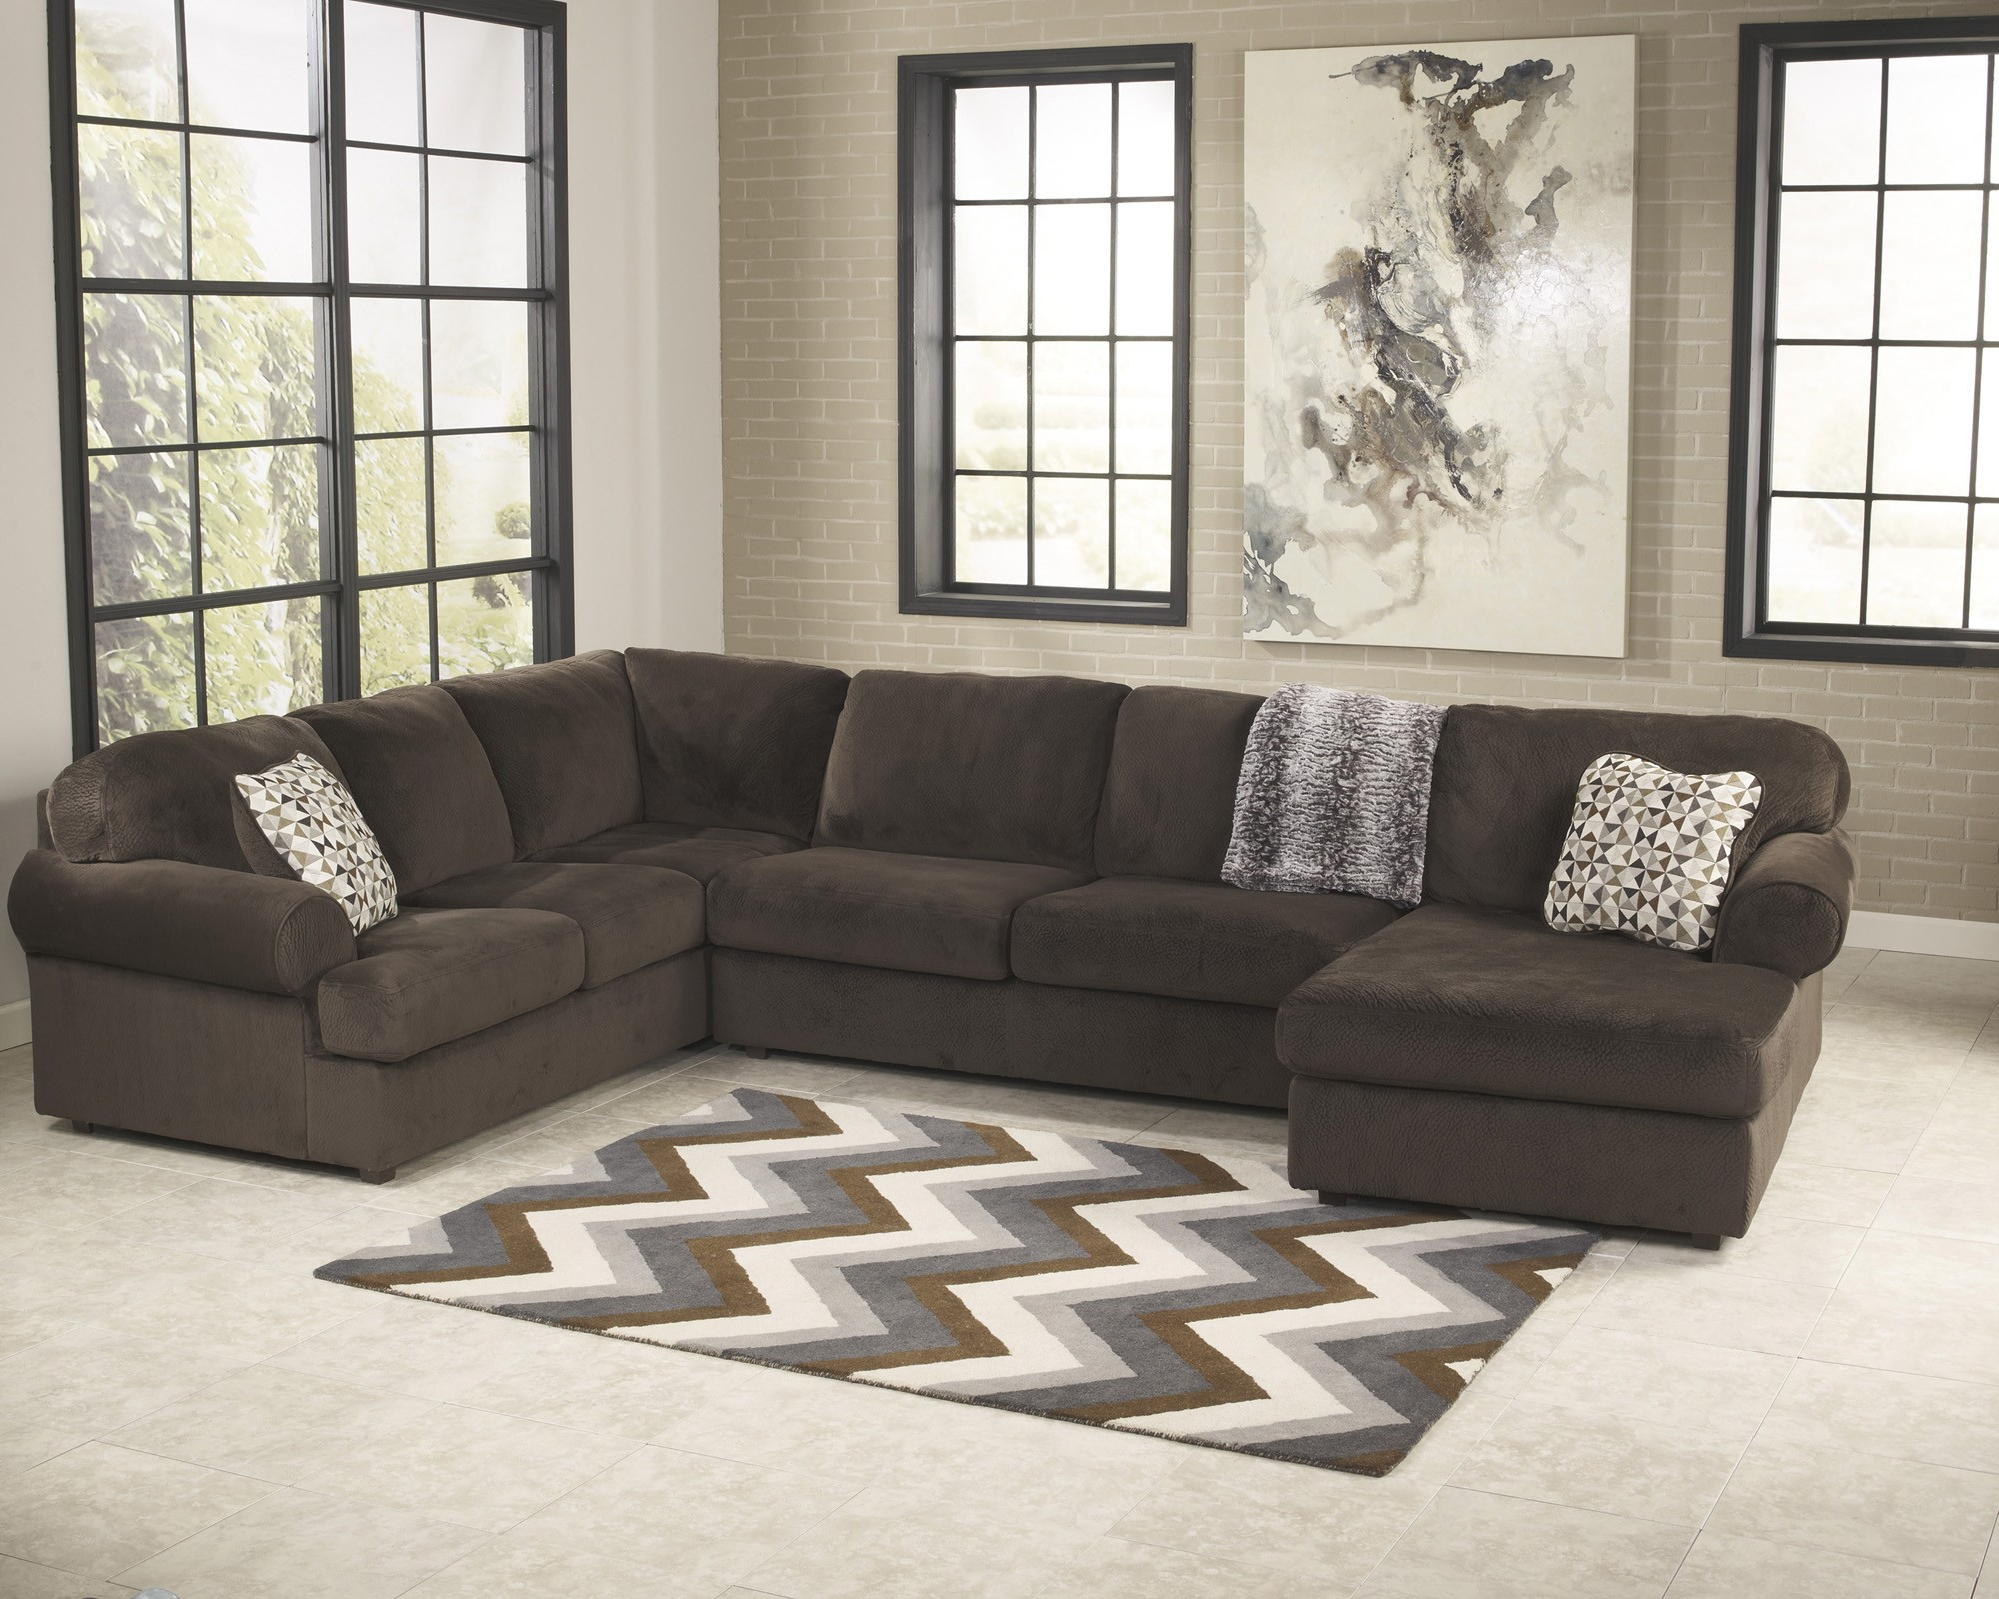 3 Chaise Sectional With Regard To Recent Malbry Point 3 Piece Sectionals With Laf Chaise (View 9 of 20)